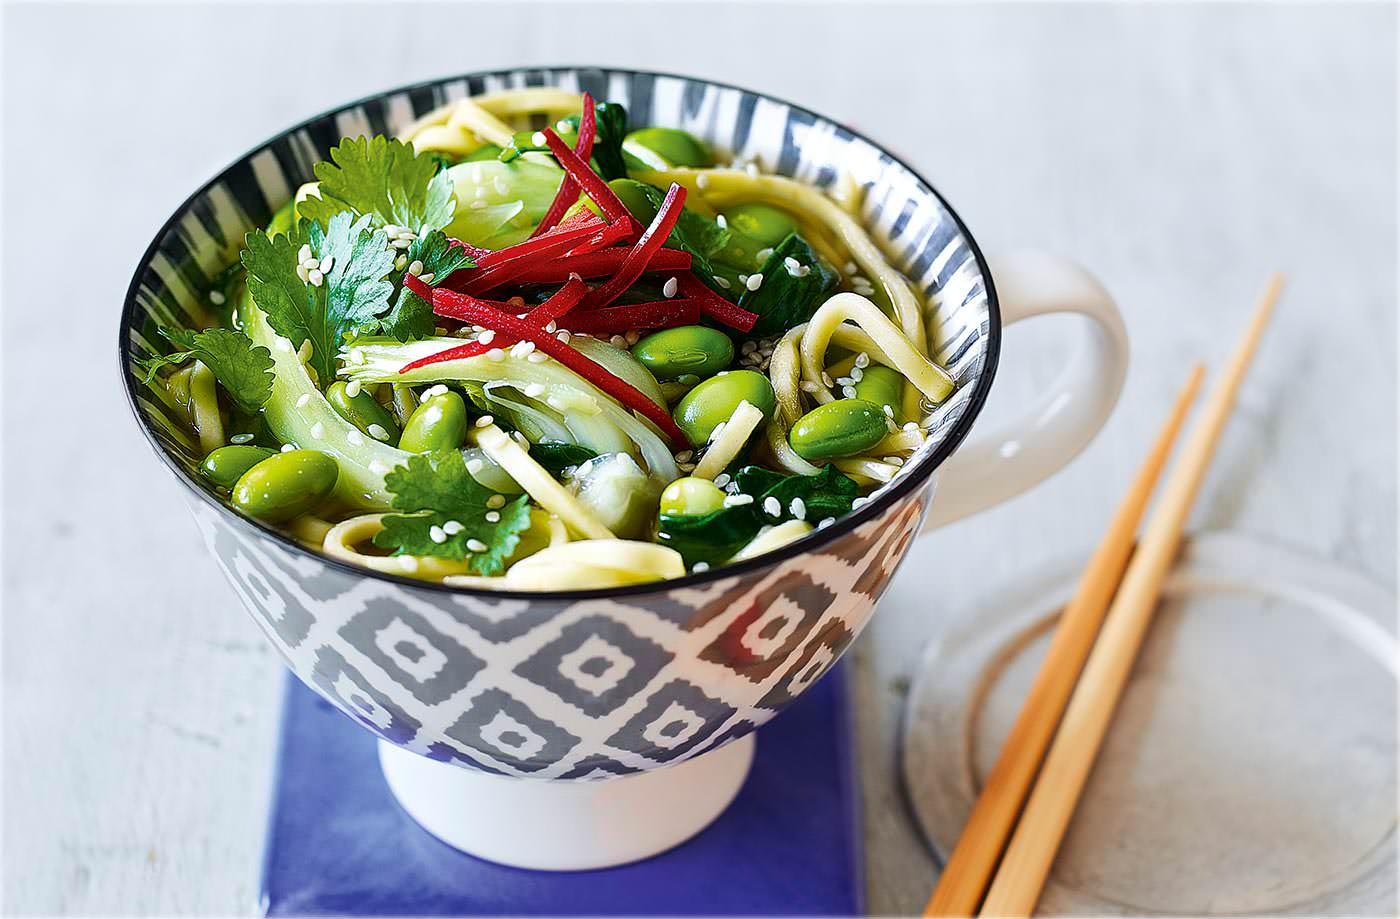 Relaxing Miso Greens Noodle Pot Miso Greens Noodle Pot Cup Noodles Tesco Real Food Noodles Pot Menu Noodles Pot Tesco nice food Noodles In The Pot